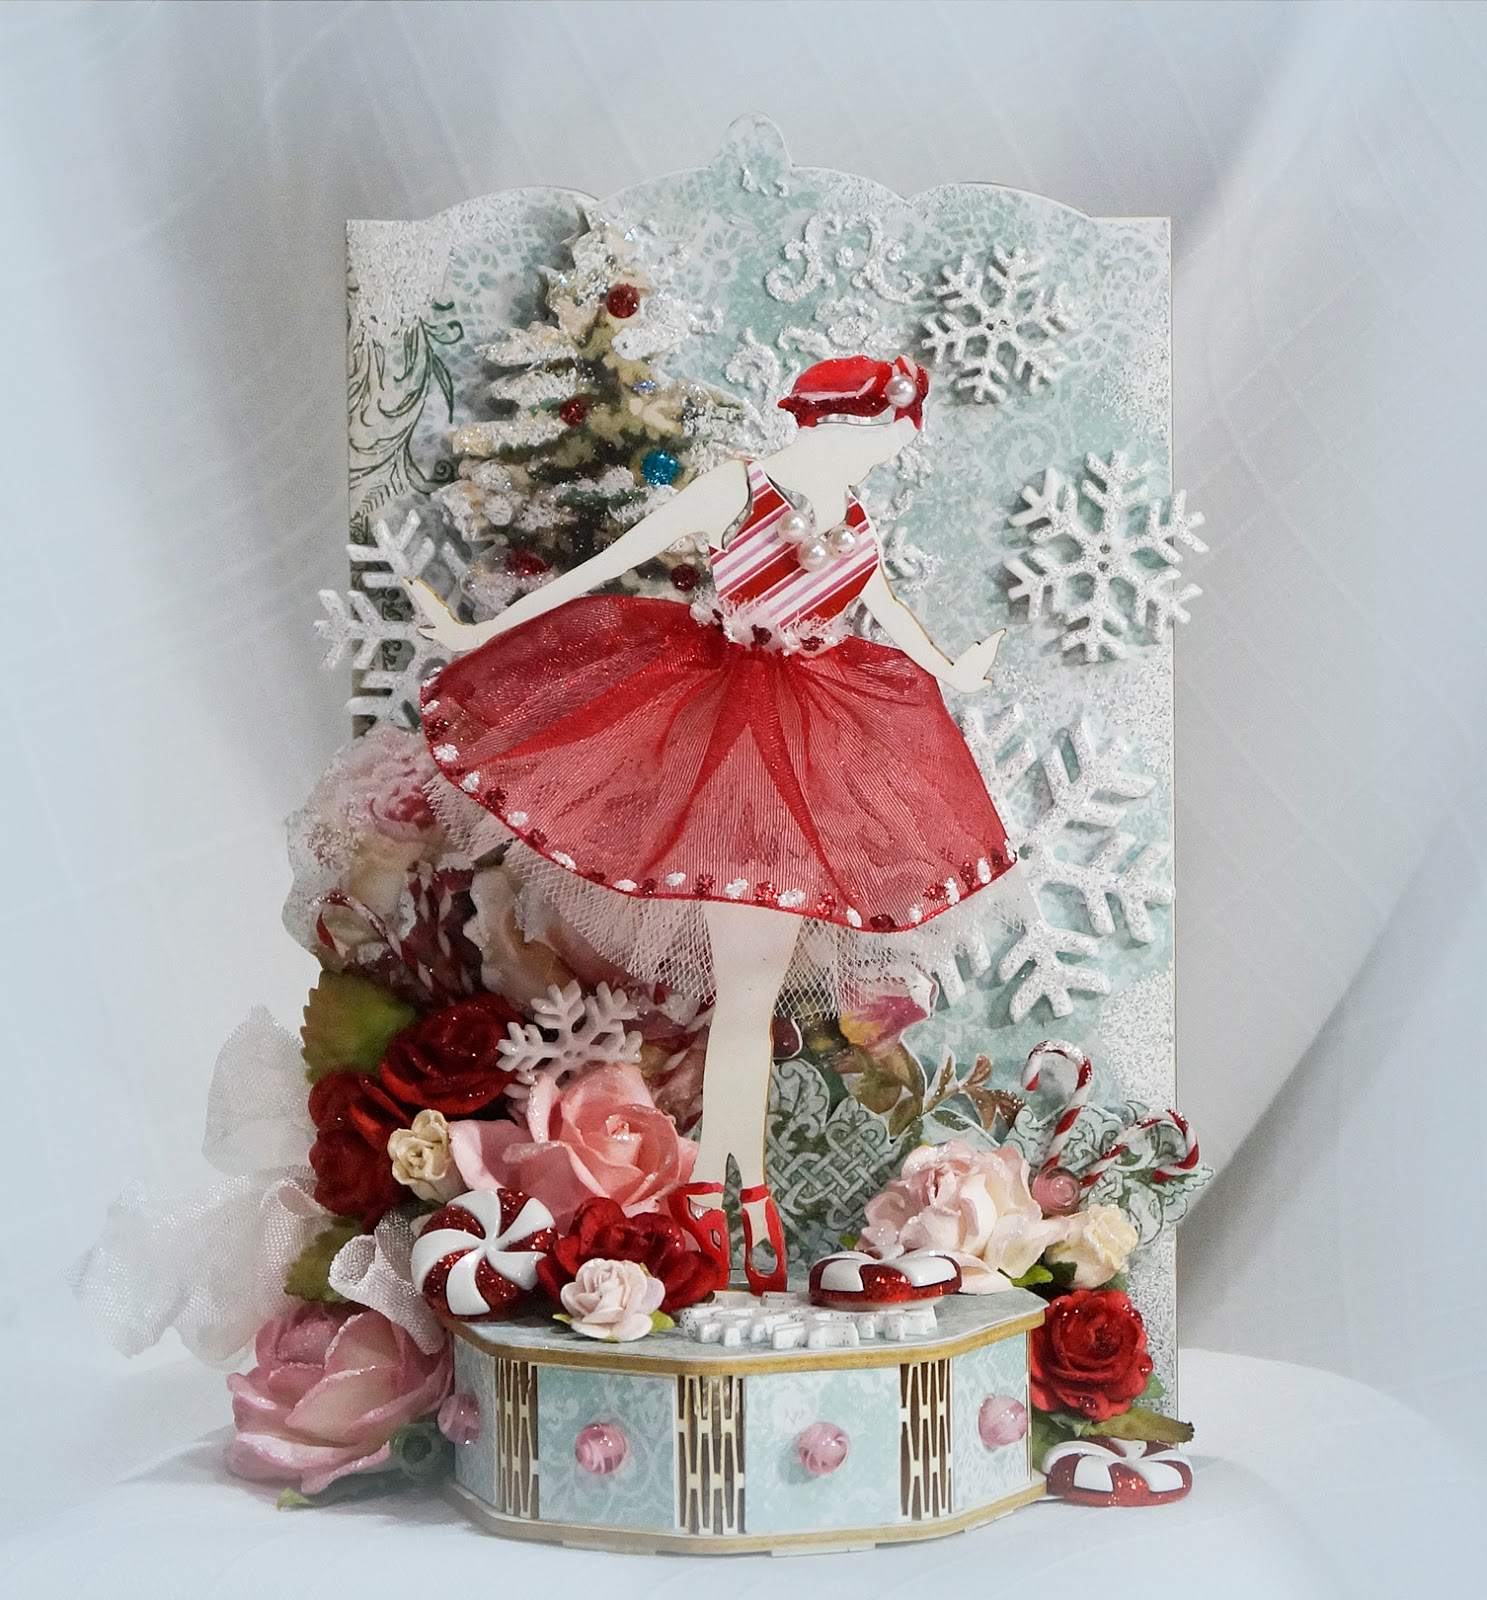 Terrys scrapbooks decorated reneabouquets 3d ballerina chipboard kit i have decorated reneabouquets beautiful board 3d ballerina do it yourself laser cut chipboard kit to look like the sugar plum fairy solutioingenieria